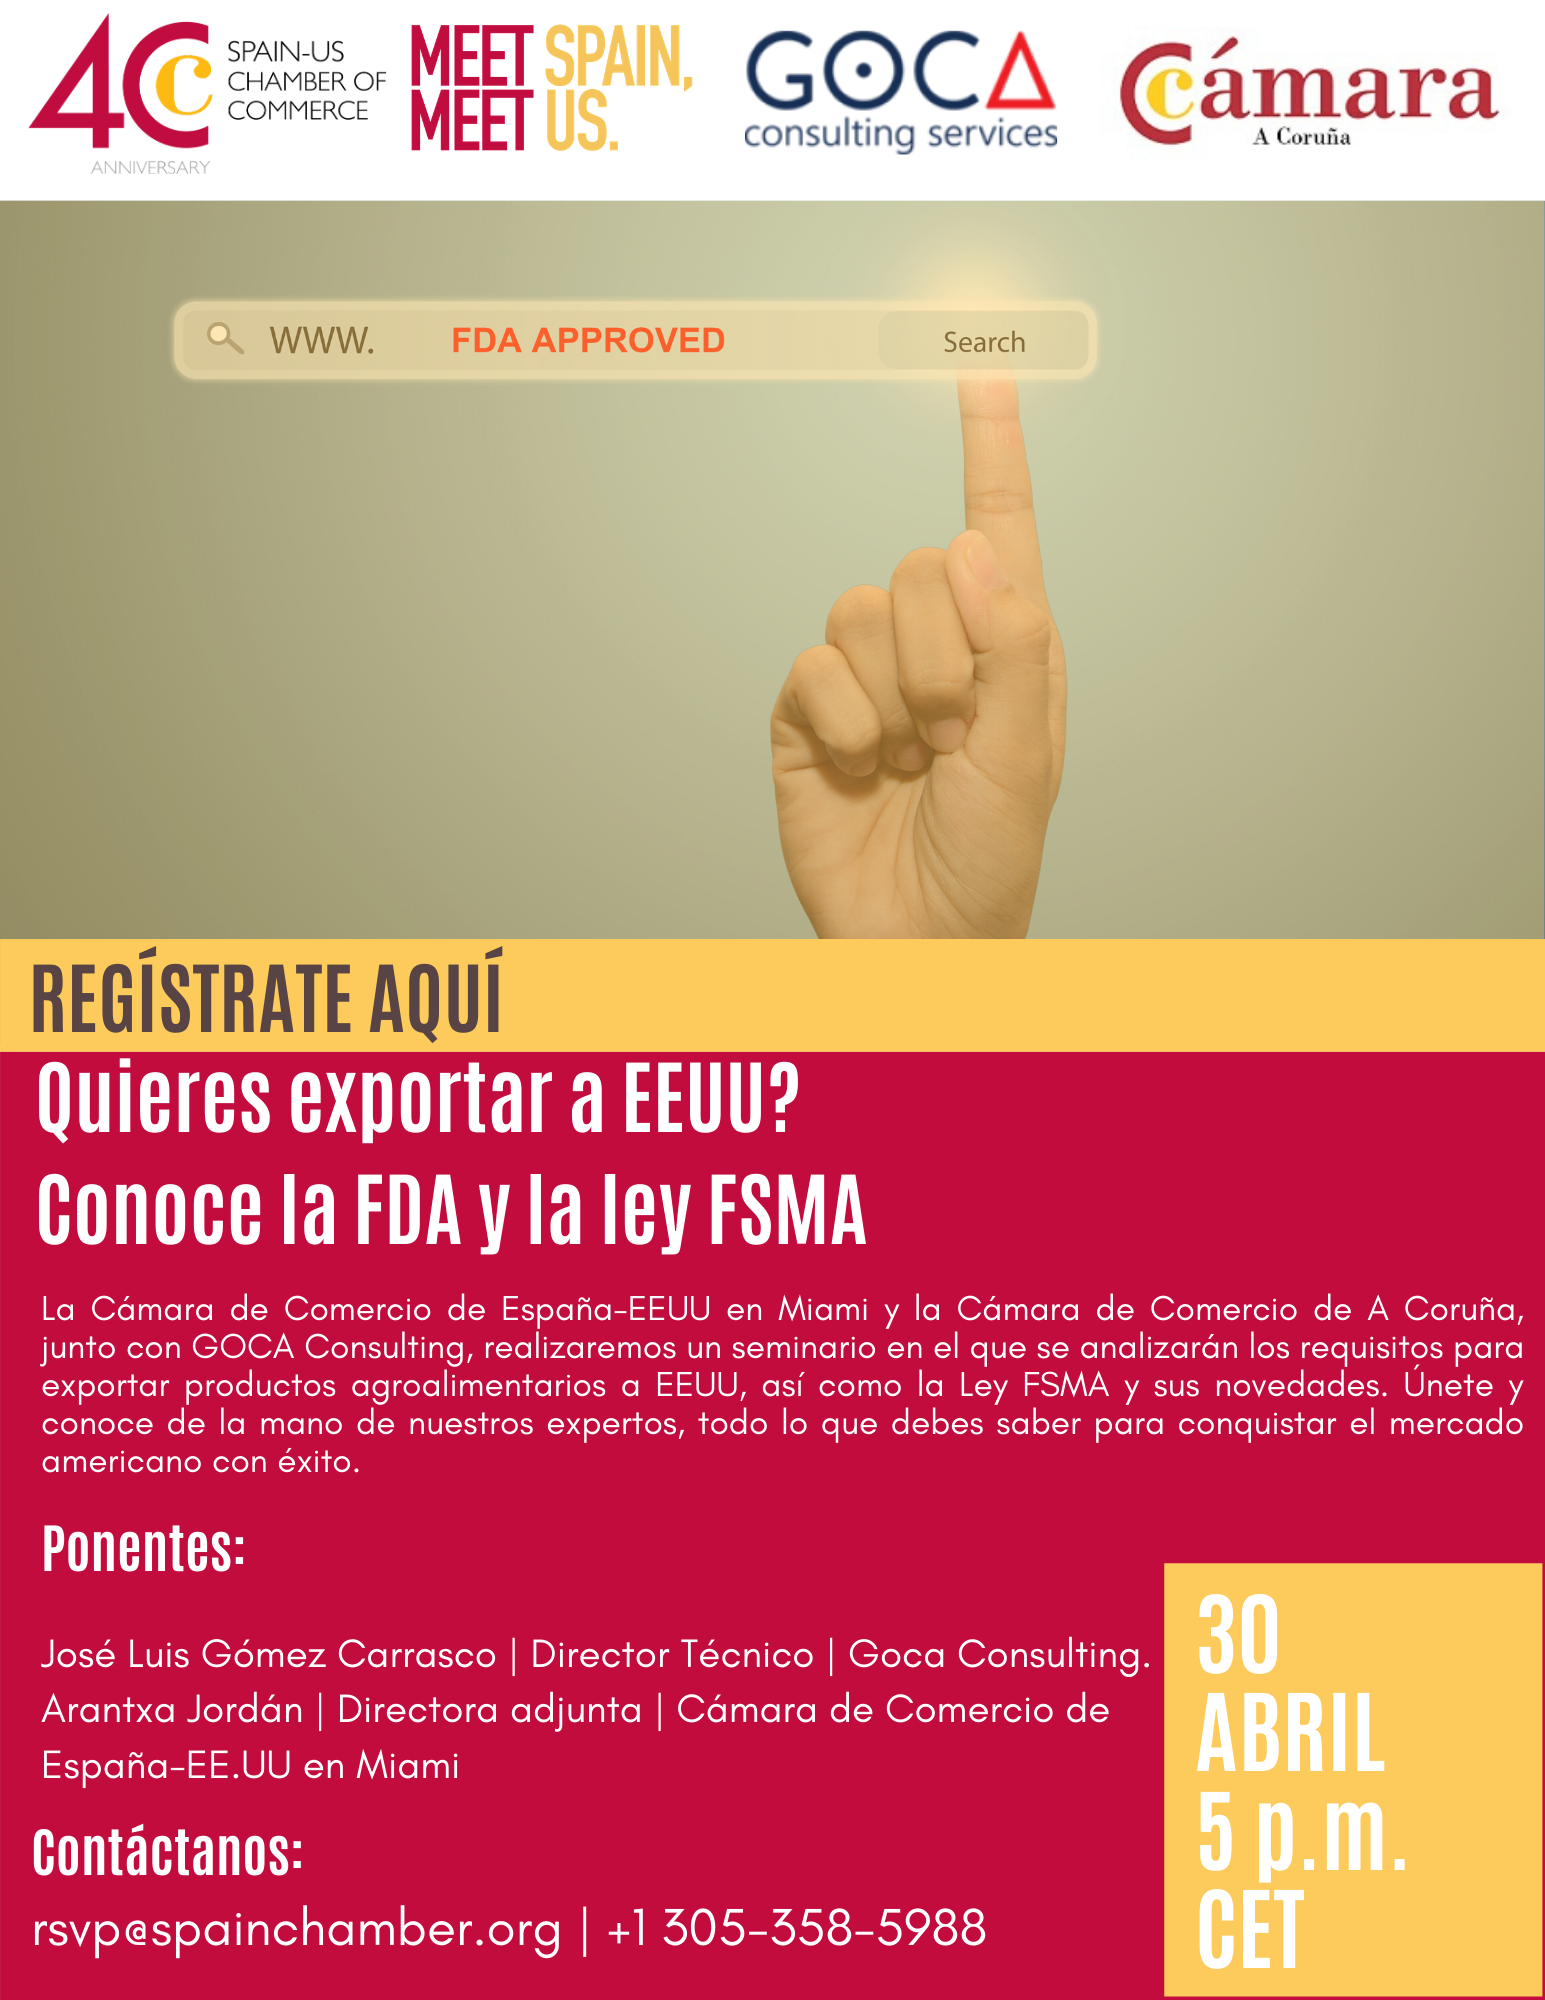 GOCA Consulting will participate in the webinars organized by the Spain-U.S. Chamber of Commerce in Miami